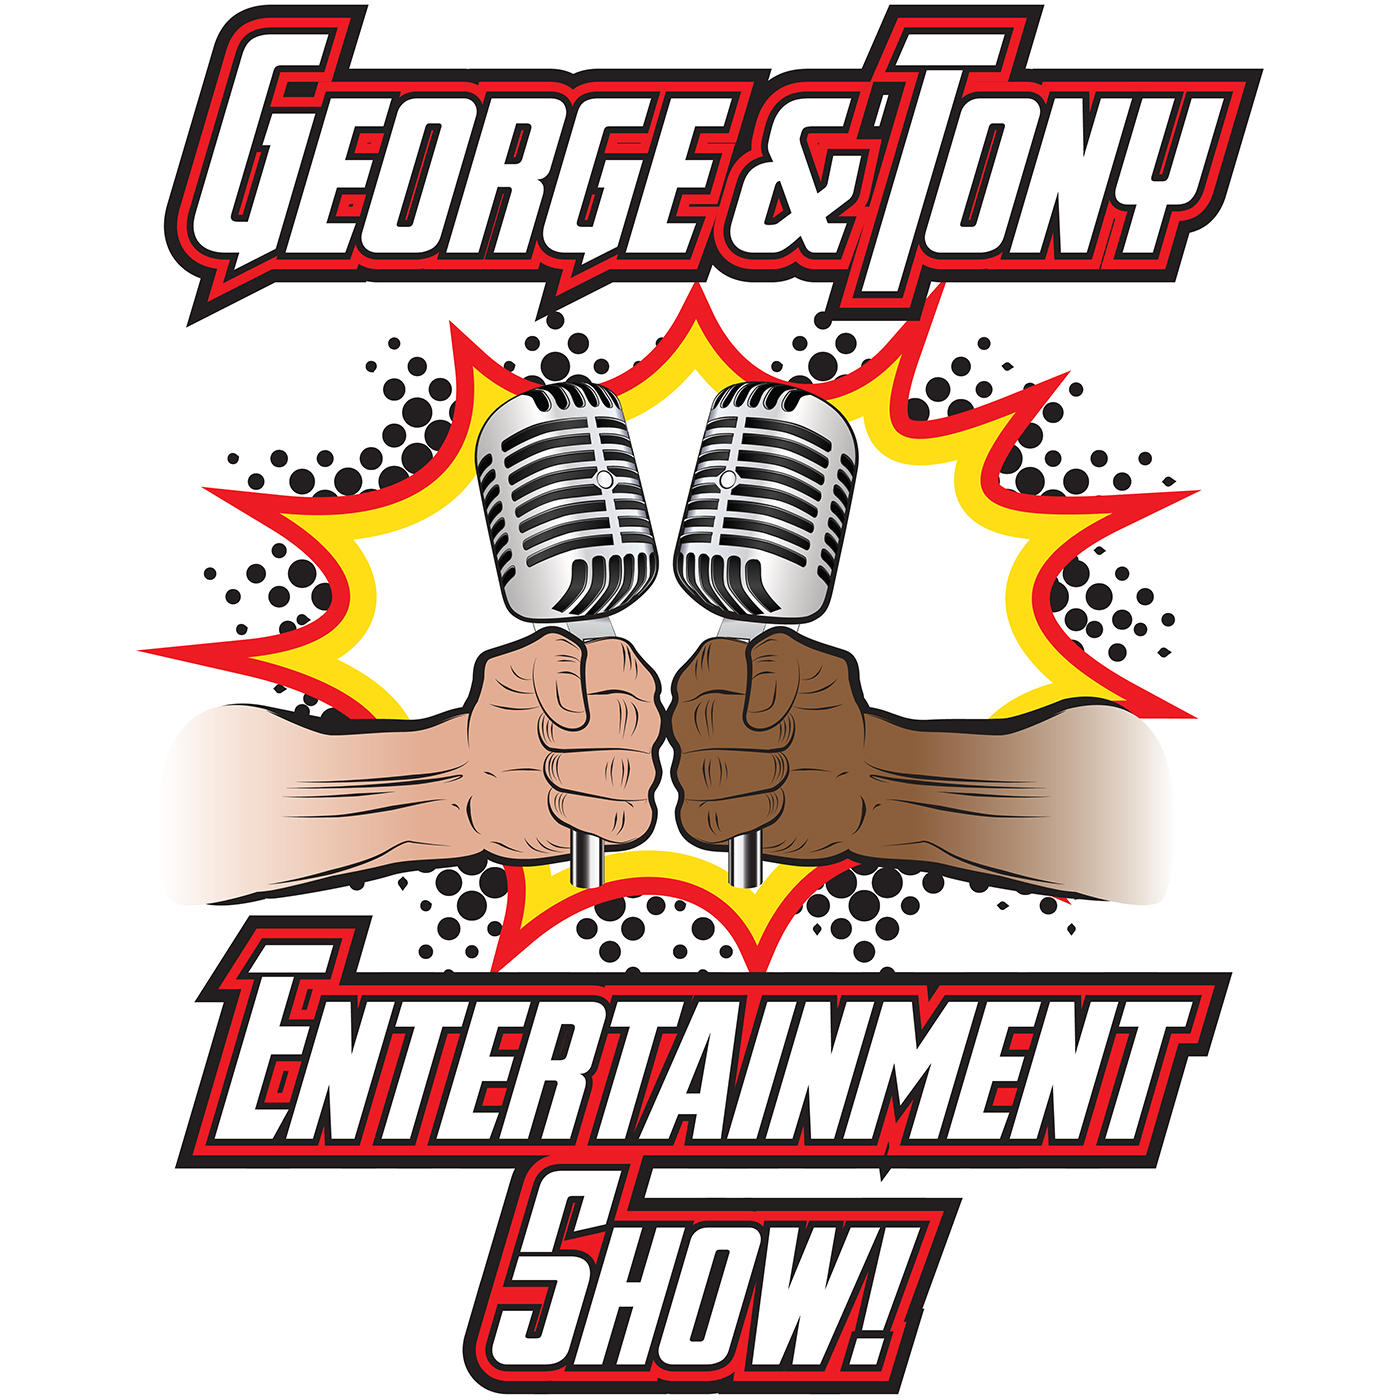 George and Tony Entertainment Show #114